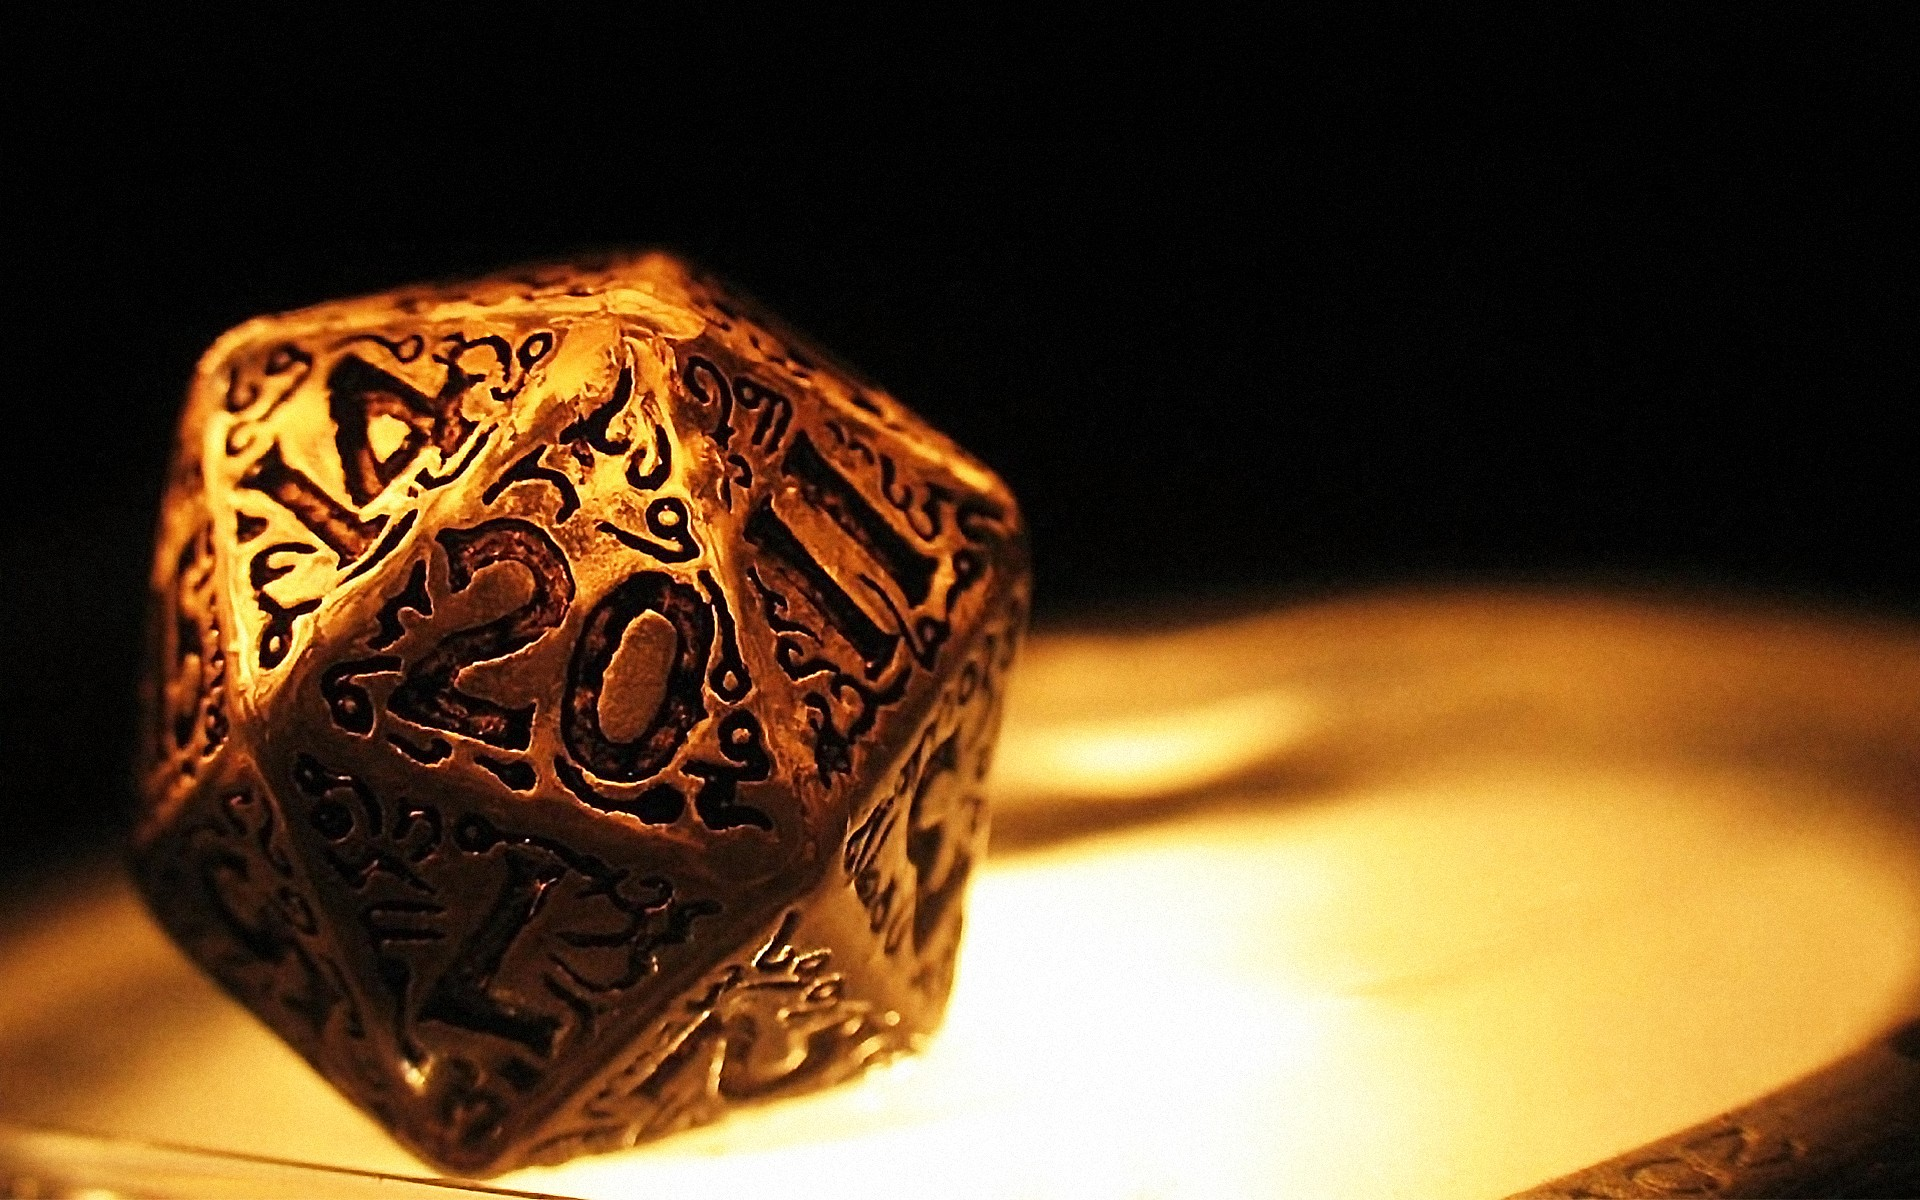 Geek dice nerd gold dnd ancient dungeons and dragons board games games 20 sided die hd wallpapers